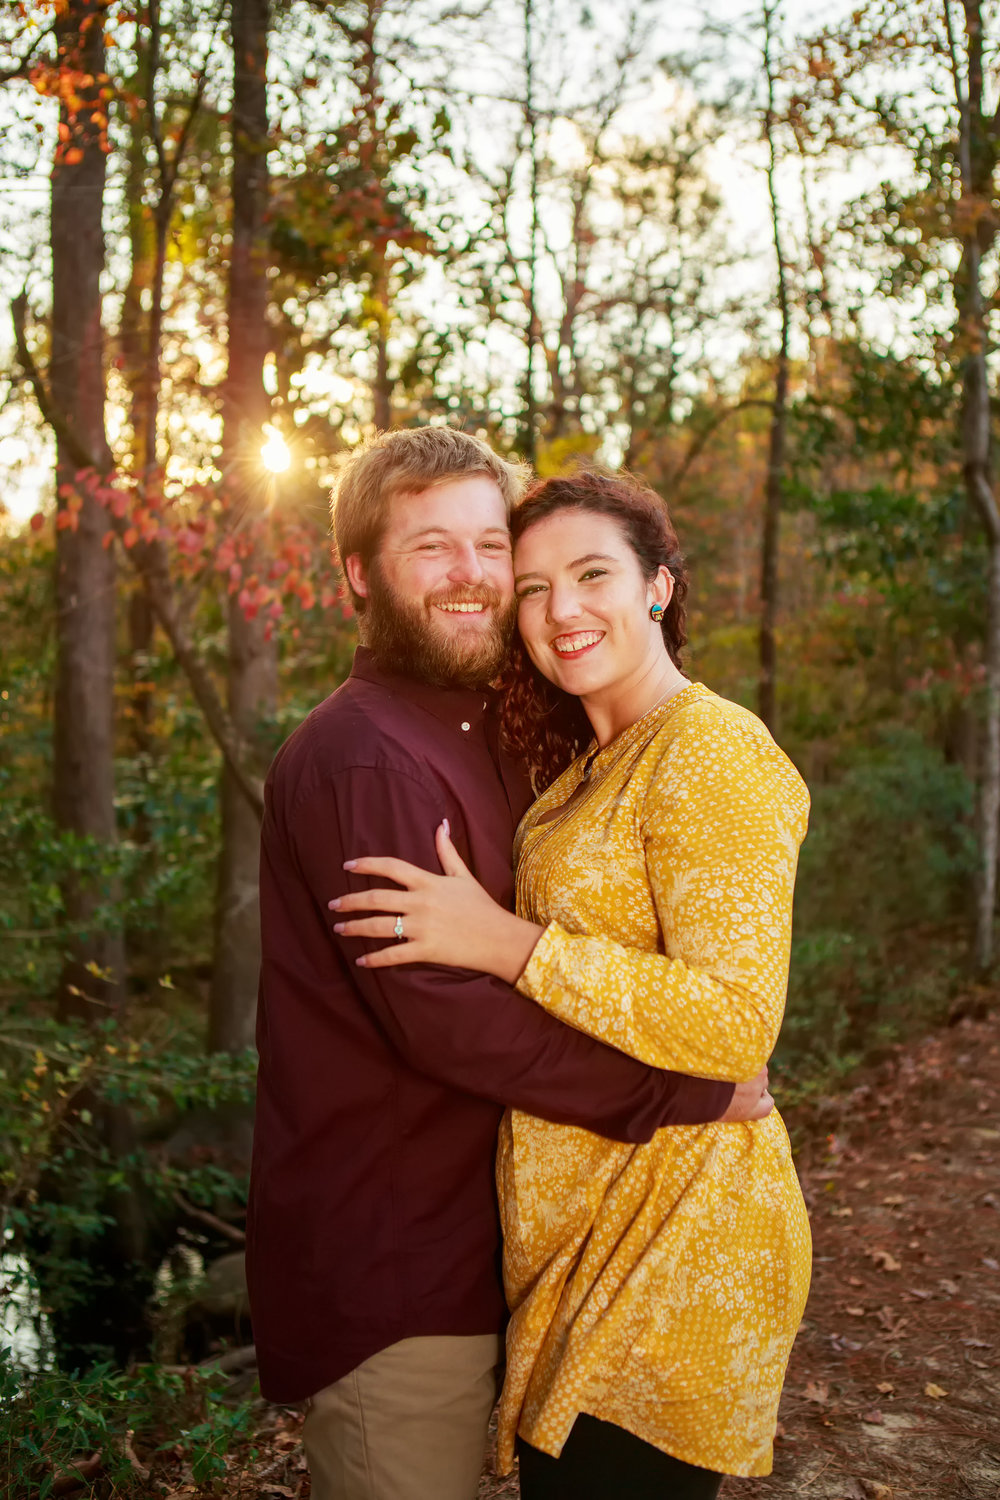 Wilmington_NC_Engagement_Photos_Tiffany_Abruzzo_Photography_15.jpg